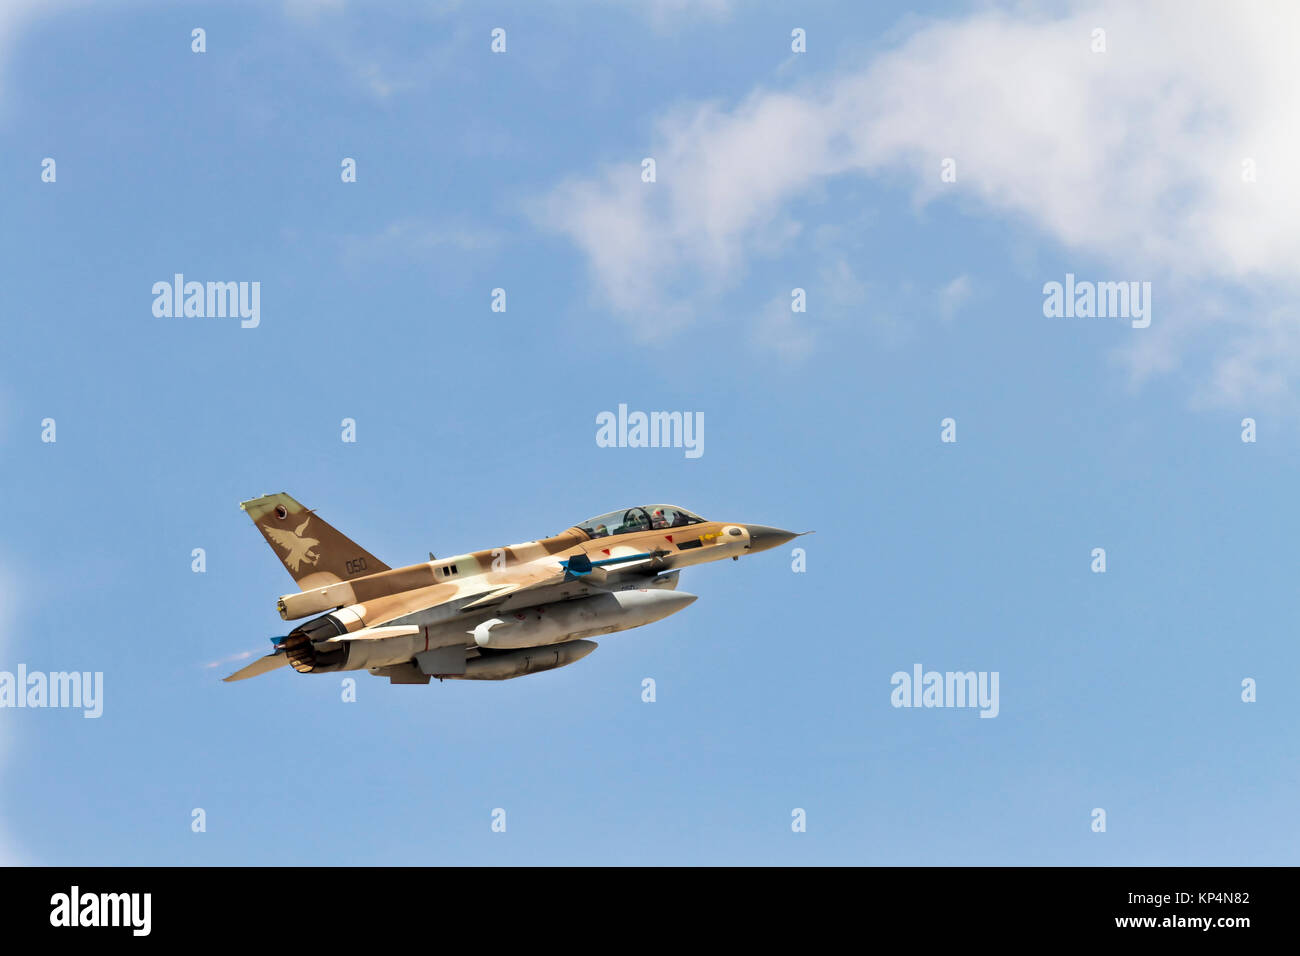 """Israeli Air Force (IAF) General Dynamics F-16D in flight with a blue sky background. Photographed at the """"Blue-Flag"""" - Stock Image"""